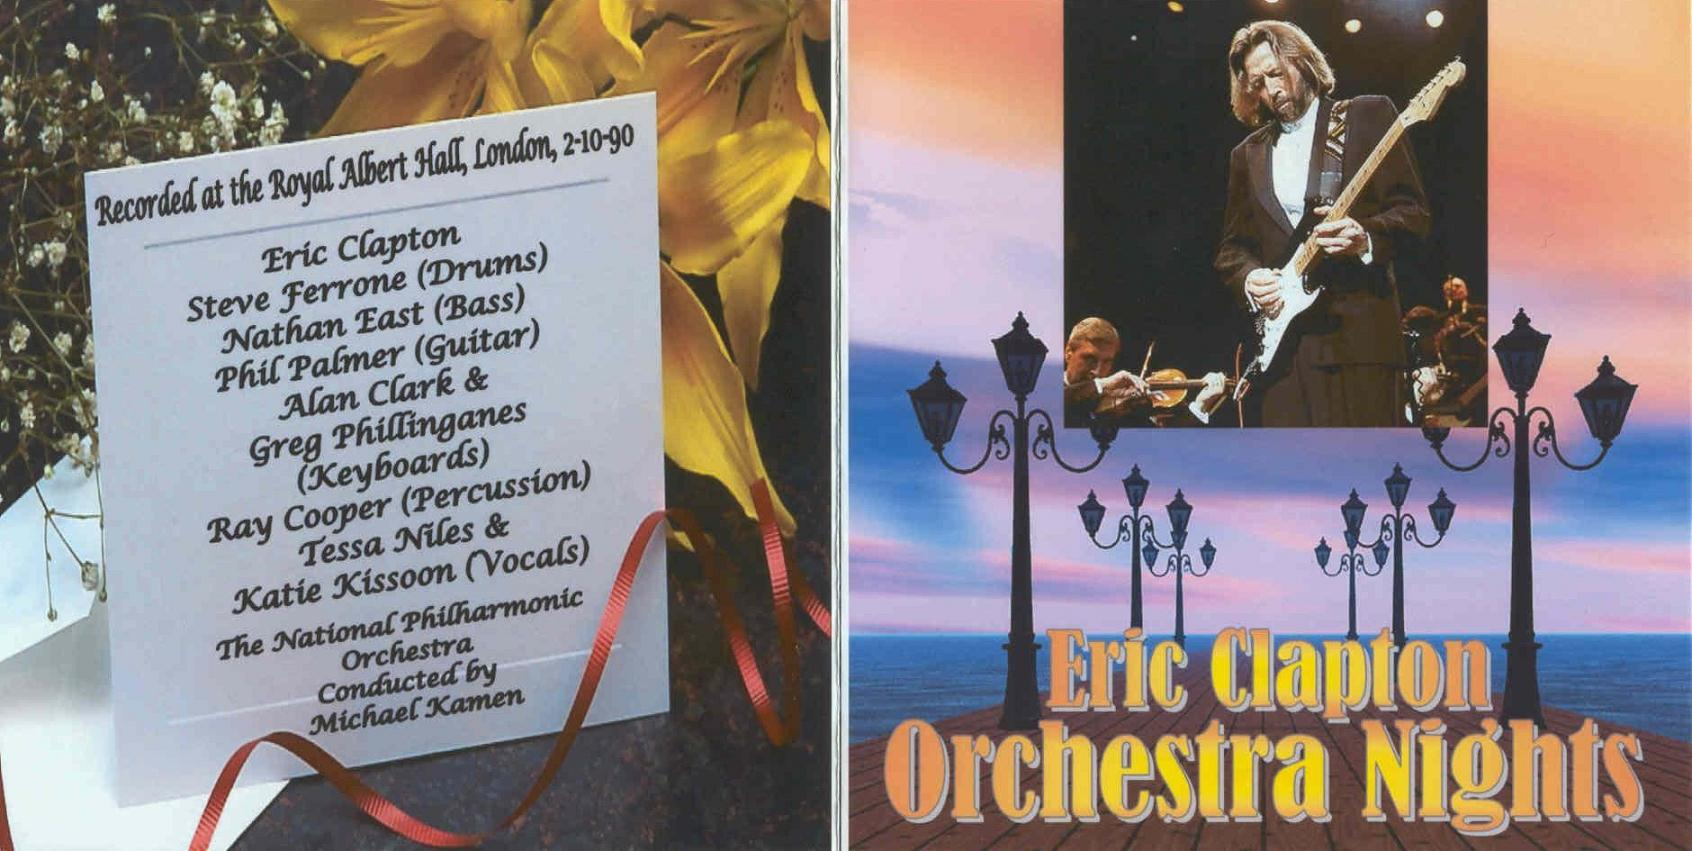 1990-02-10-orchestra_night_v2-front